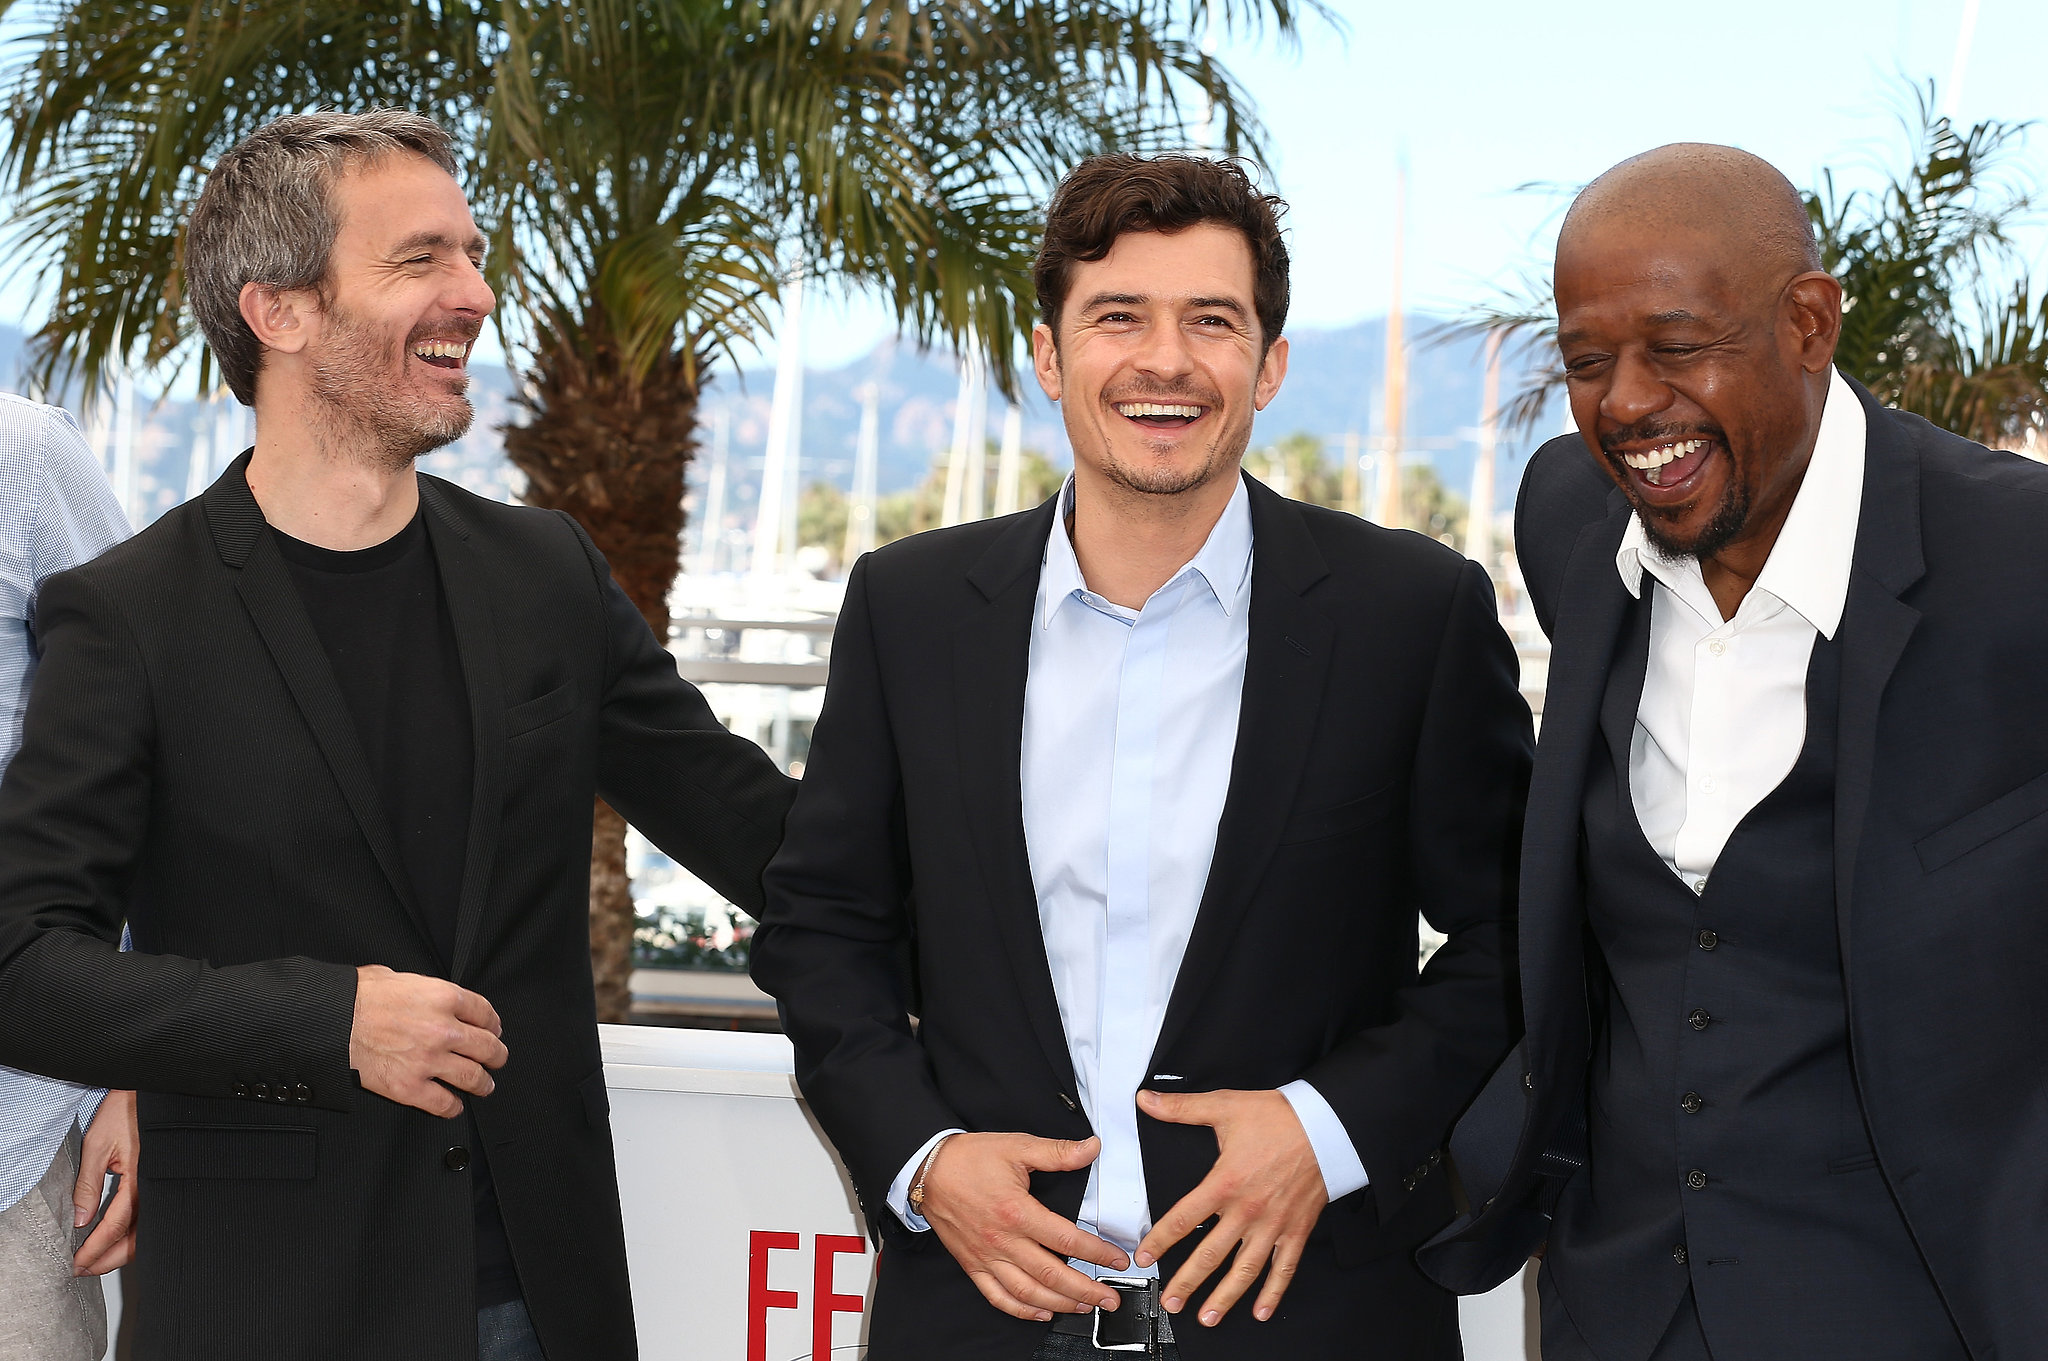 Orlando Bloom, Forest Whitaker, and Jérôme Salle laughed at the Zulu photocall in Cannes on Sunday.